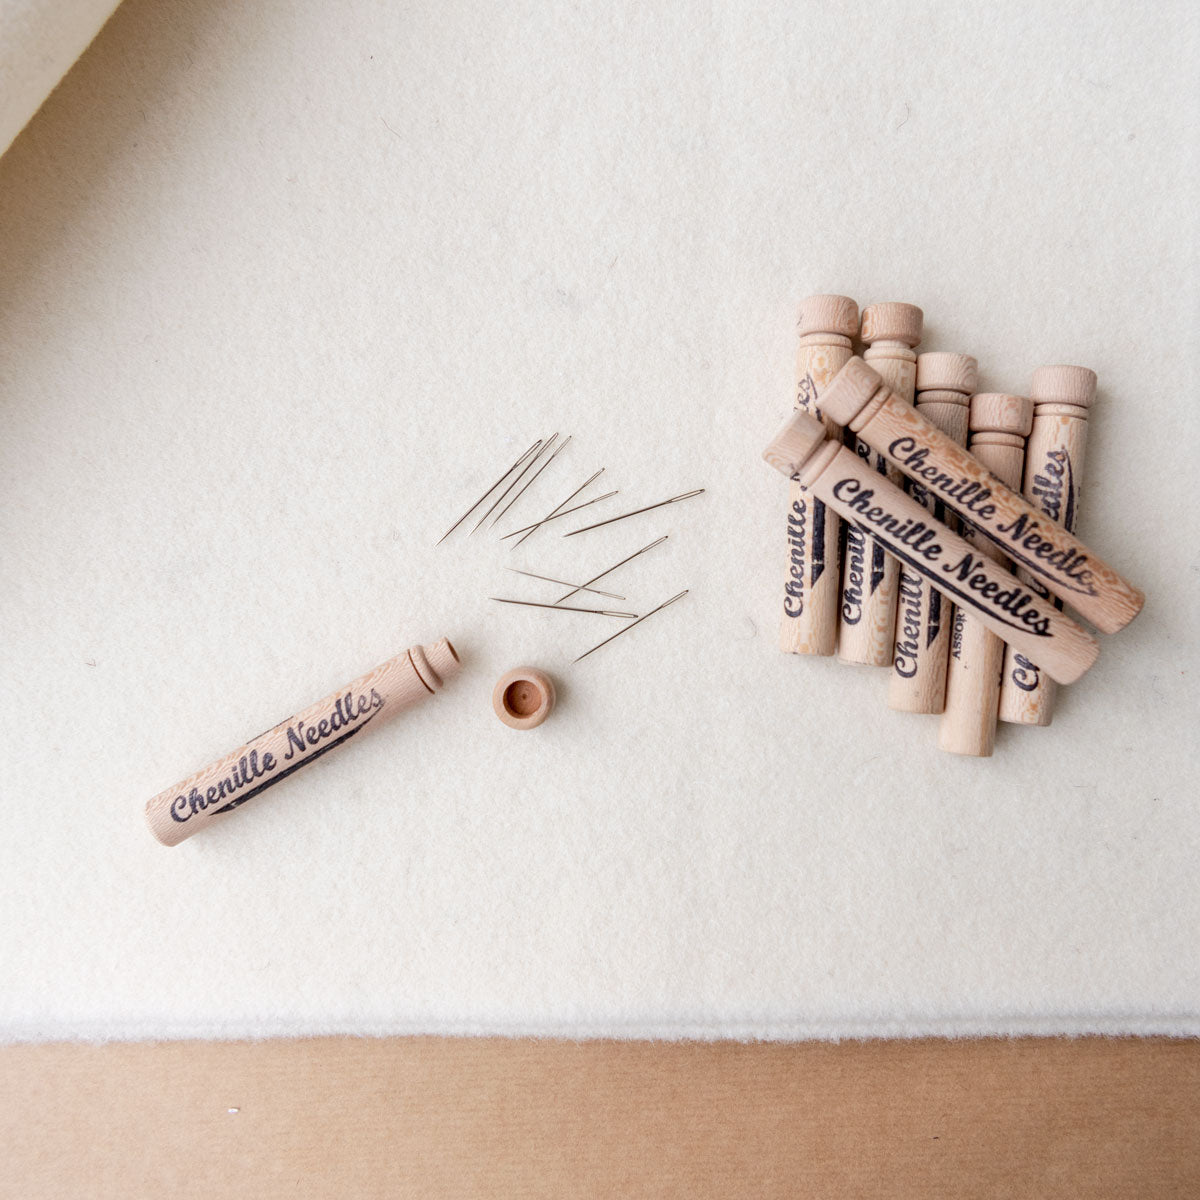 Merchant & Mills Chenille Needles